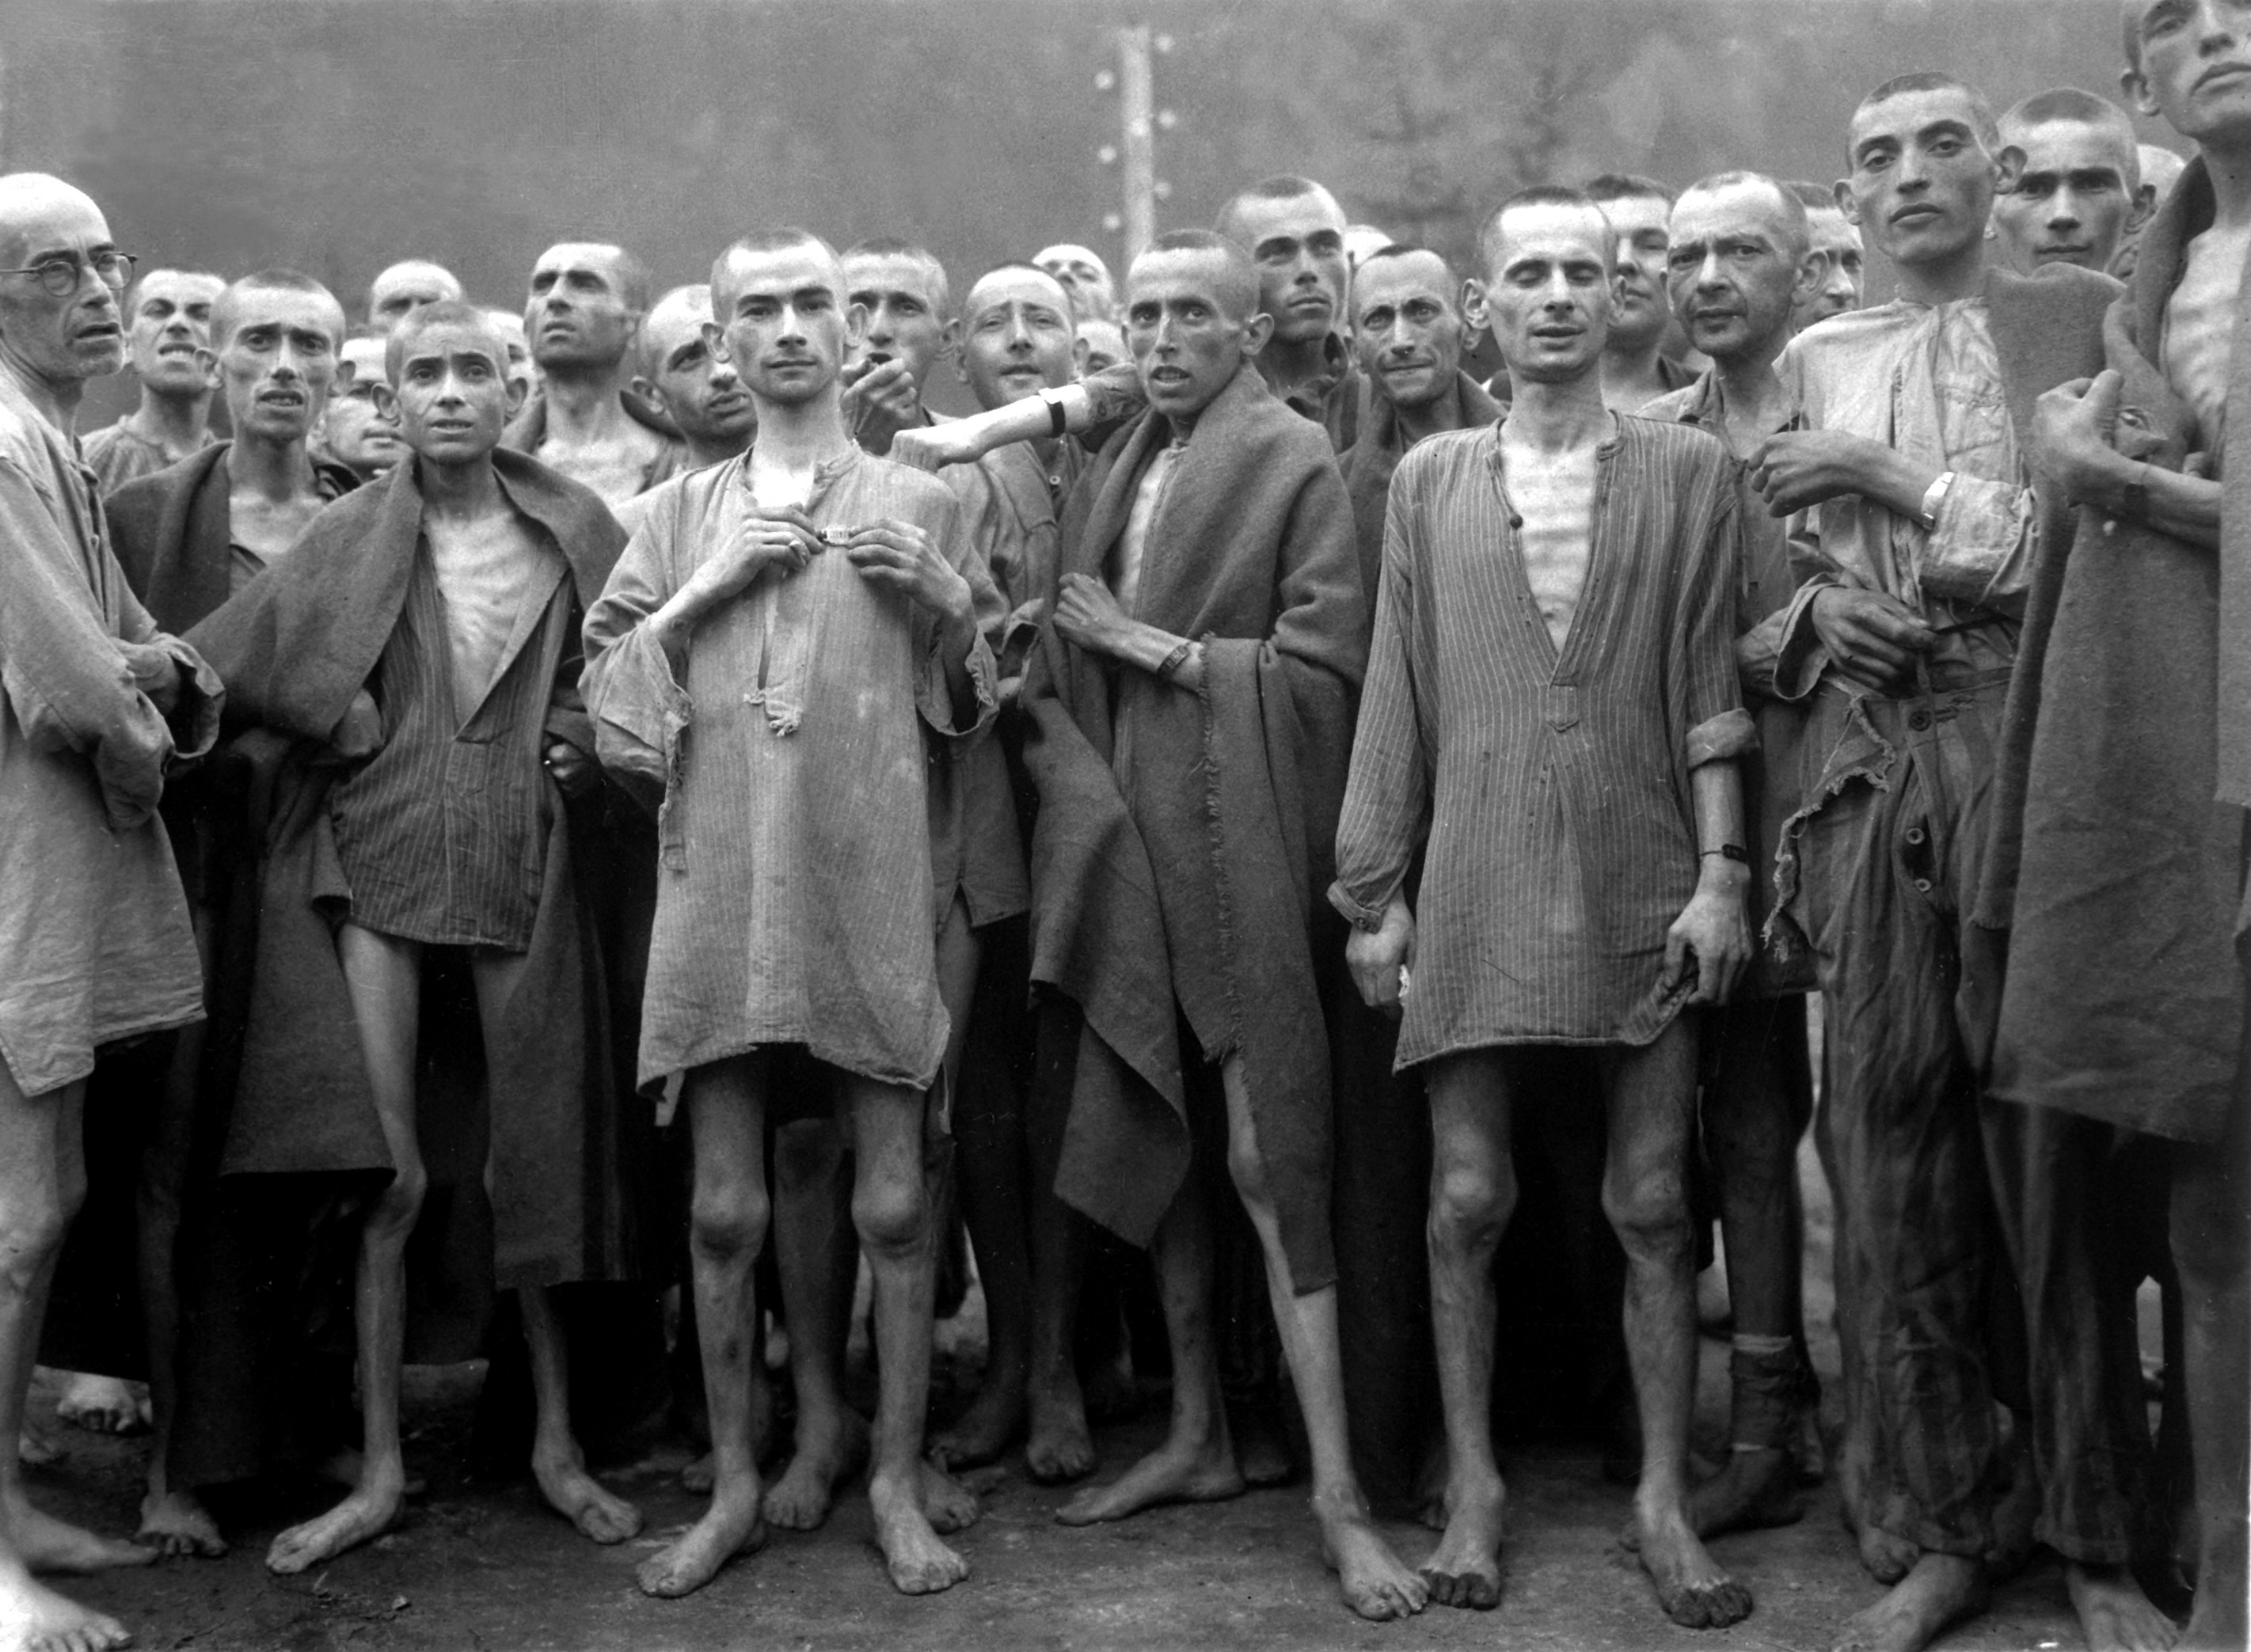 Description Ebensee concentration camp prisoners 1945.jpg